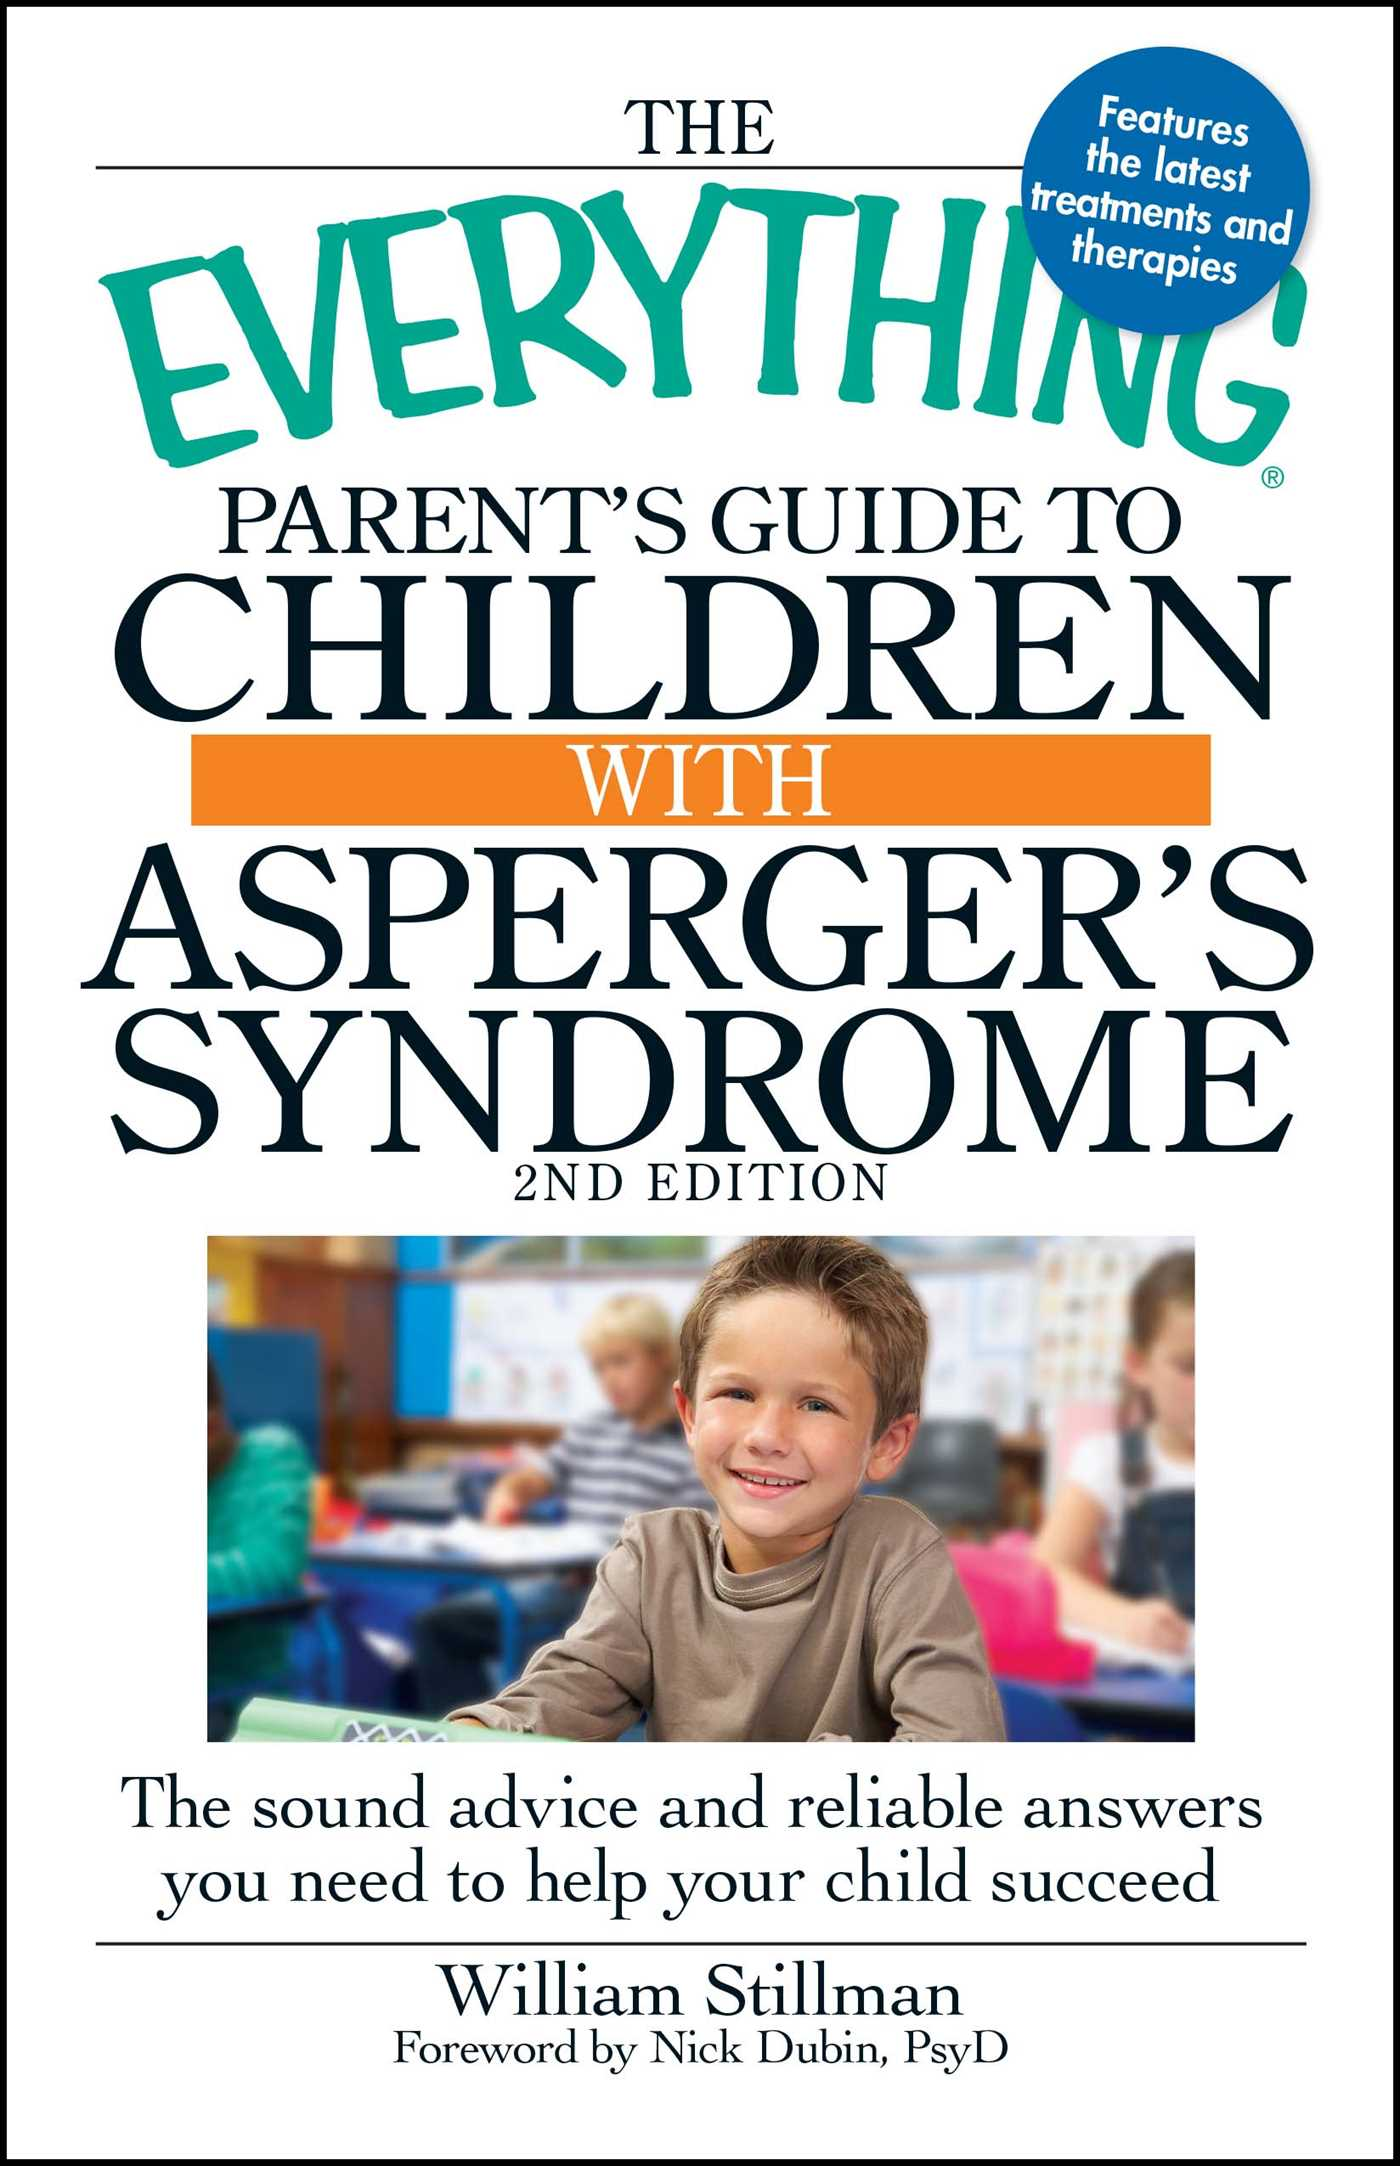 The everything parents guide to children with aspergers syndrome 9781440503955 hr